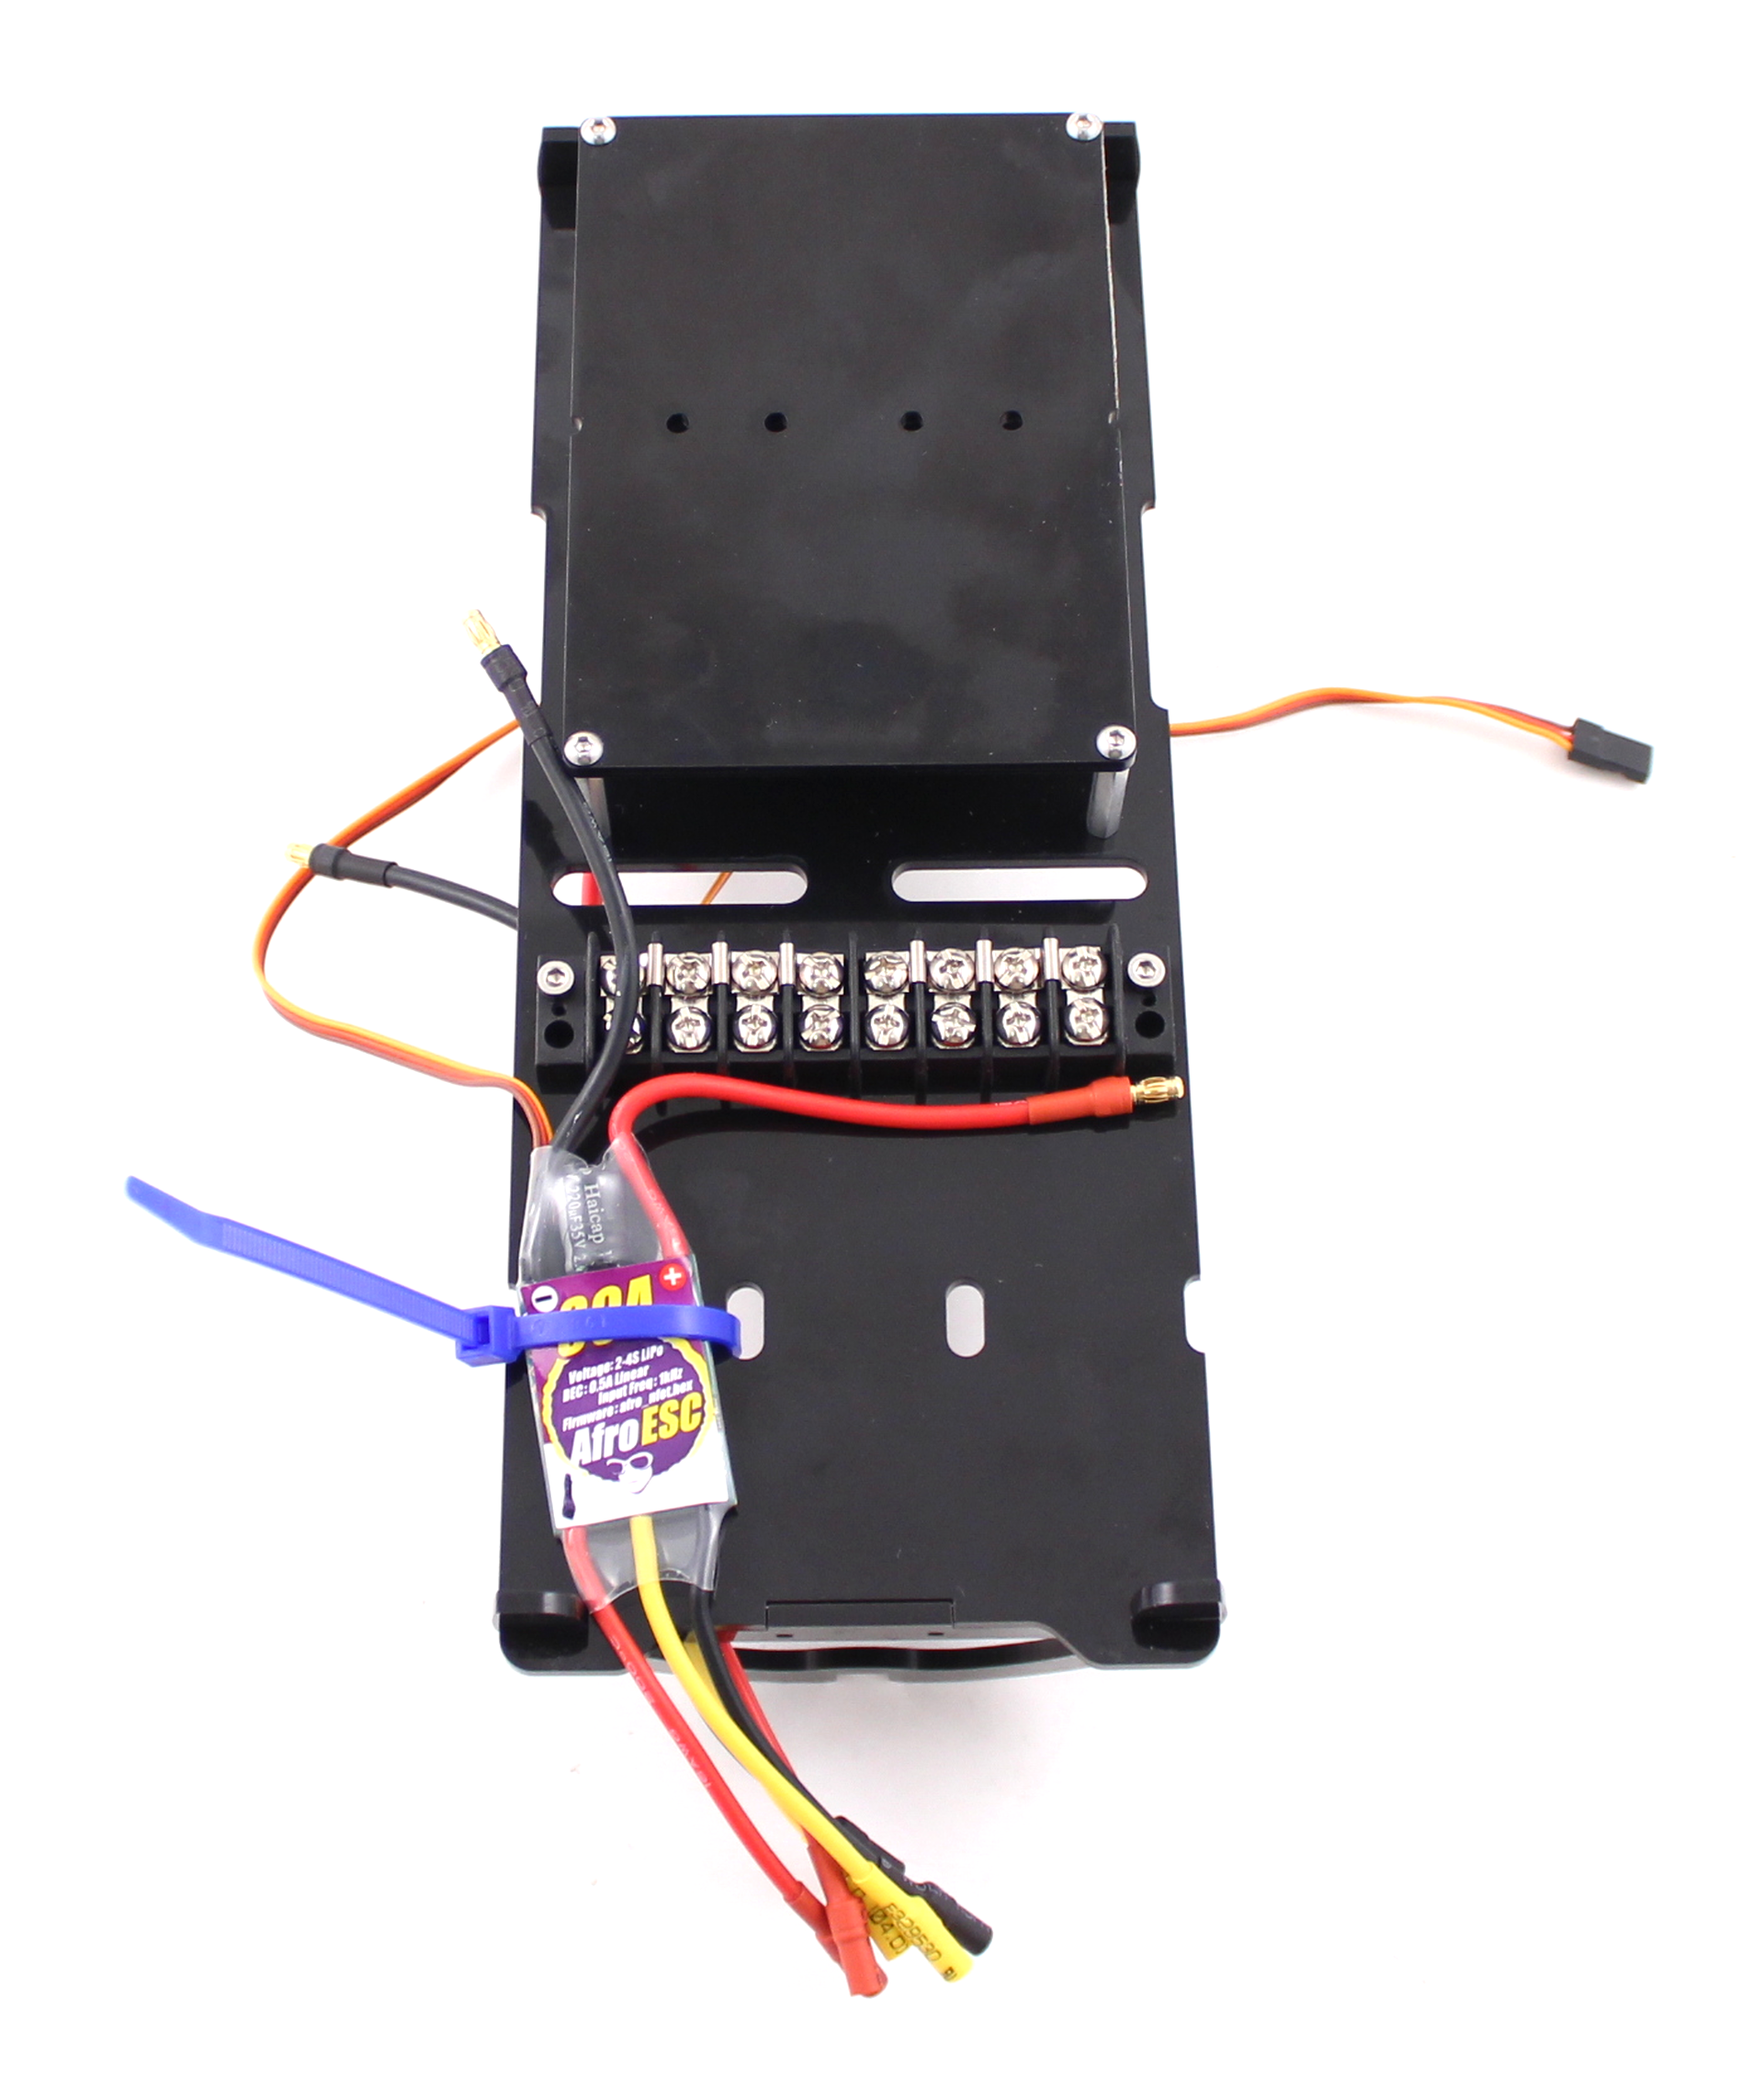 Bluerov Documentation Circuit Board Electronic Enclosure L Slide Cover Black Bottom Label The Escs 1 6 Before Mounting In Order To Keep Track Of Which Will Be Controlling Motor We Suggest Above Configuration Allow